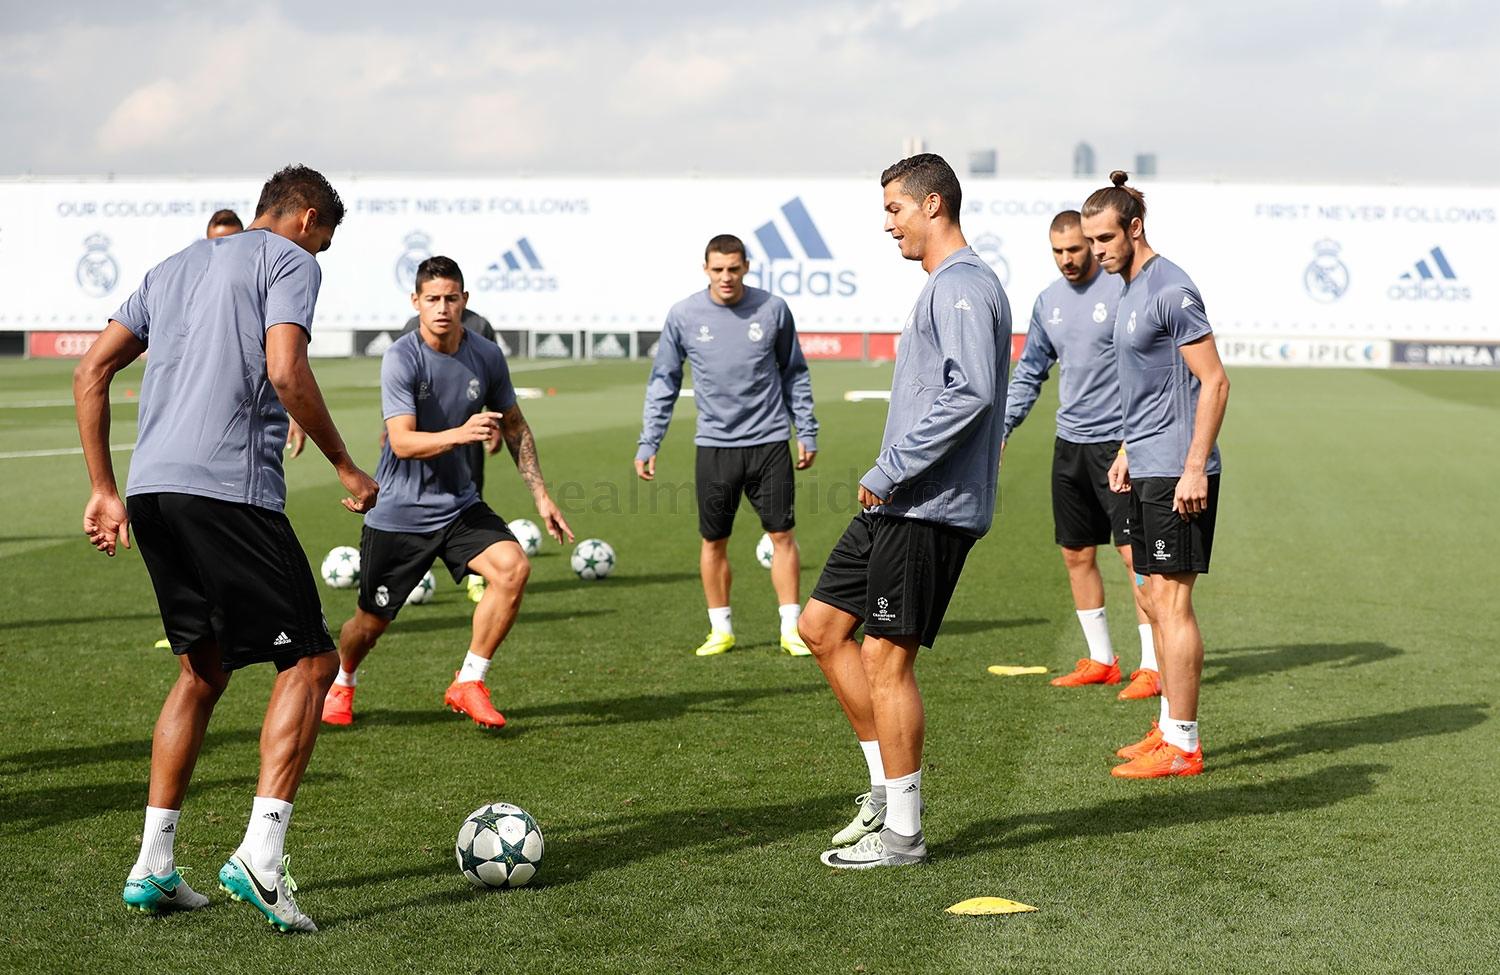 Real Madrid - Entrenamiento del Real Madrid - 13-09-2016